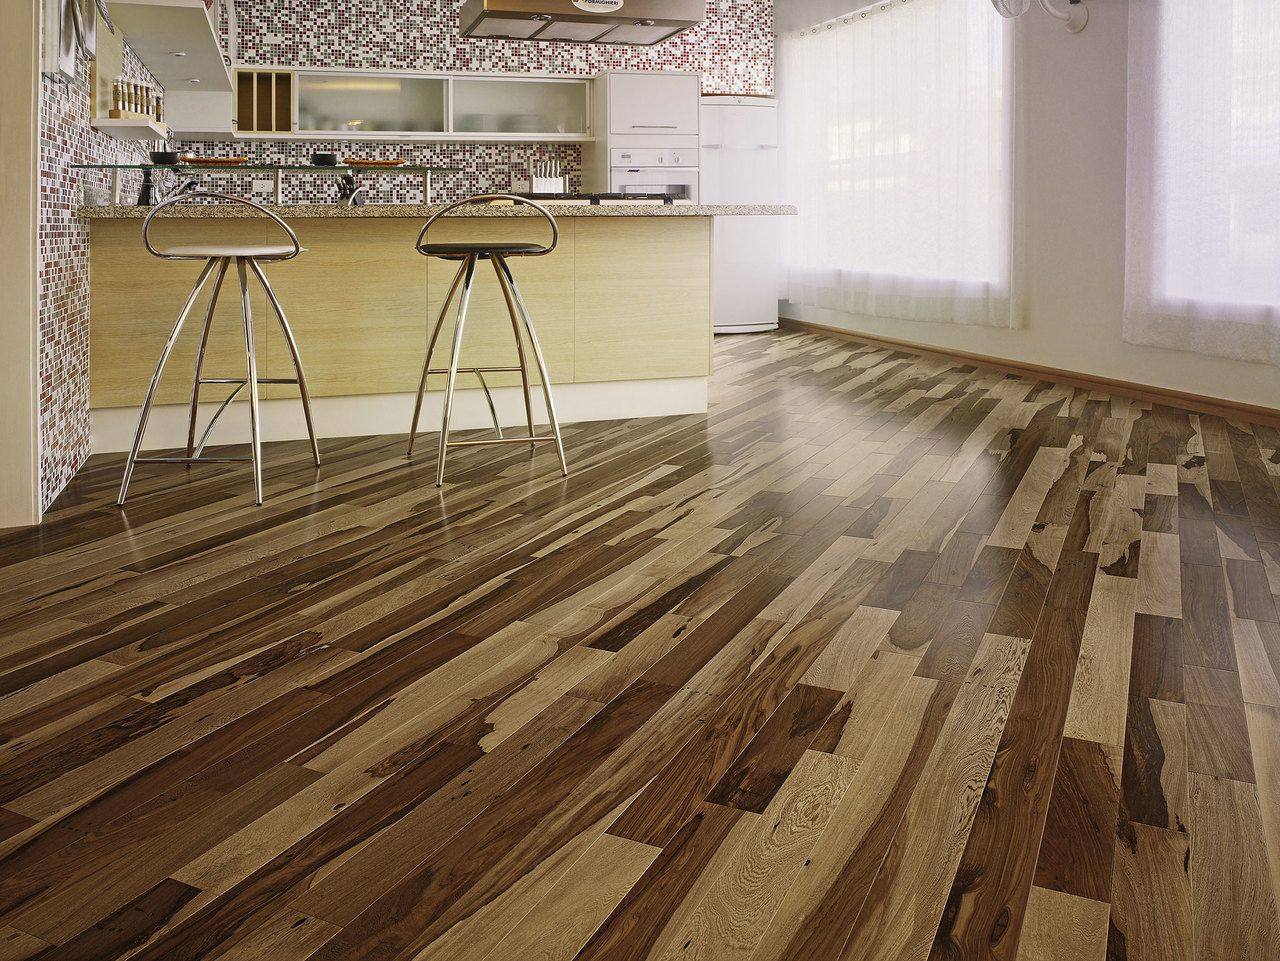 Triangulo Brazilian Pecan 1 2 X 5 1 4 Engineered Hardwood Engineered Wood Floors Hickory Hardwood Floors Best Engineered Wood Flooring